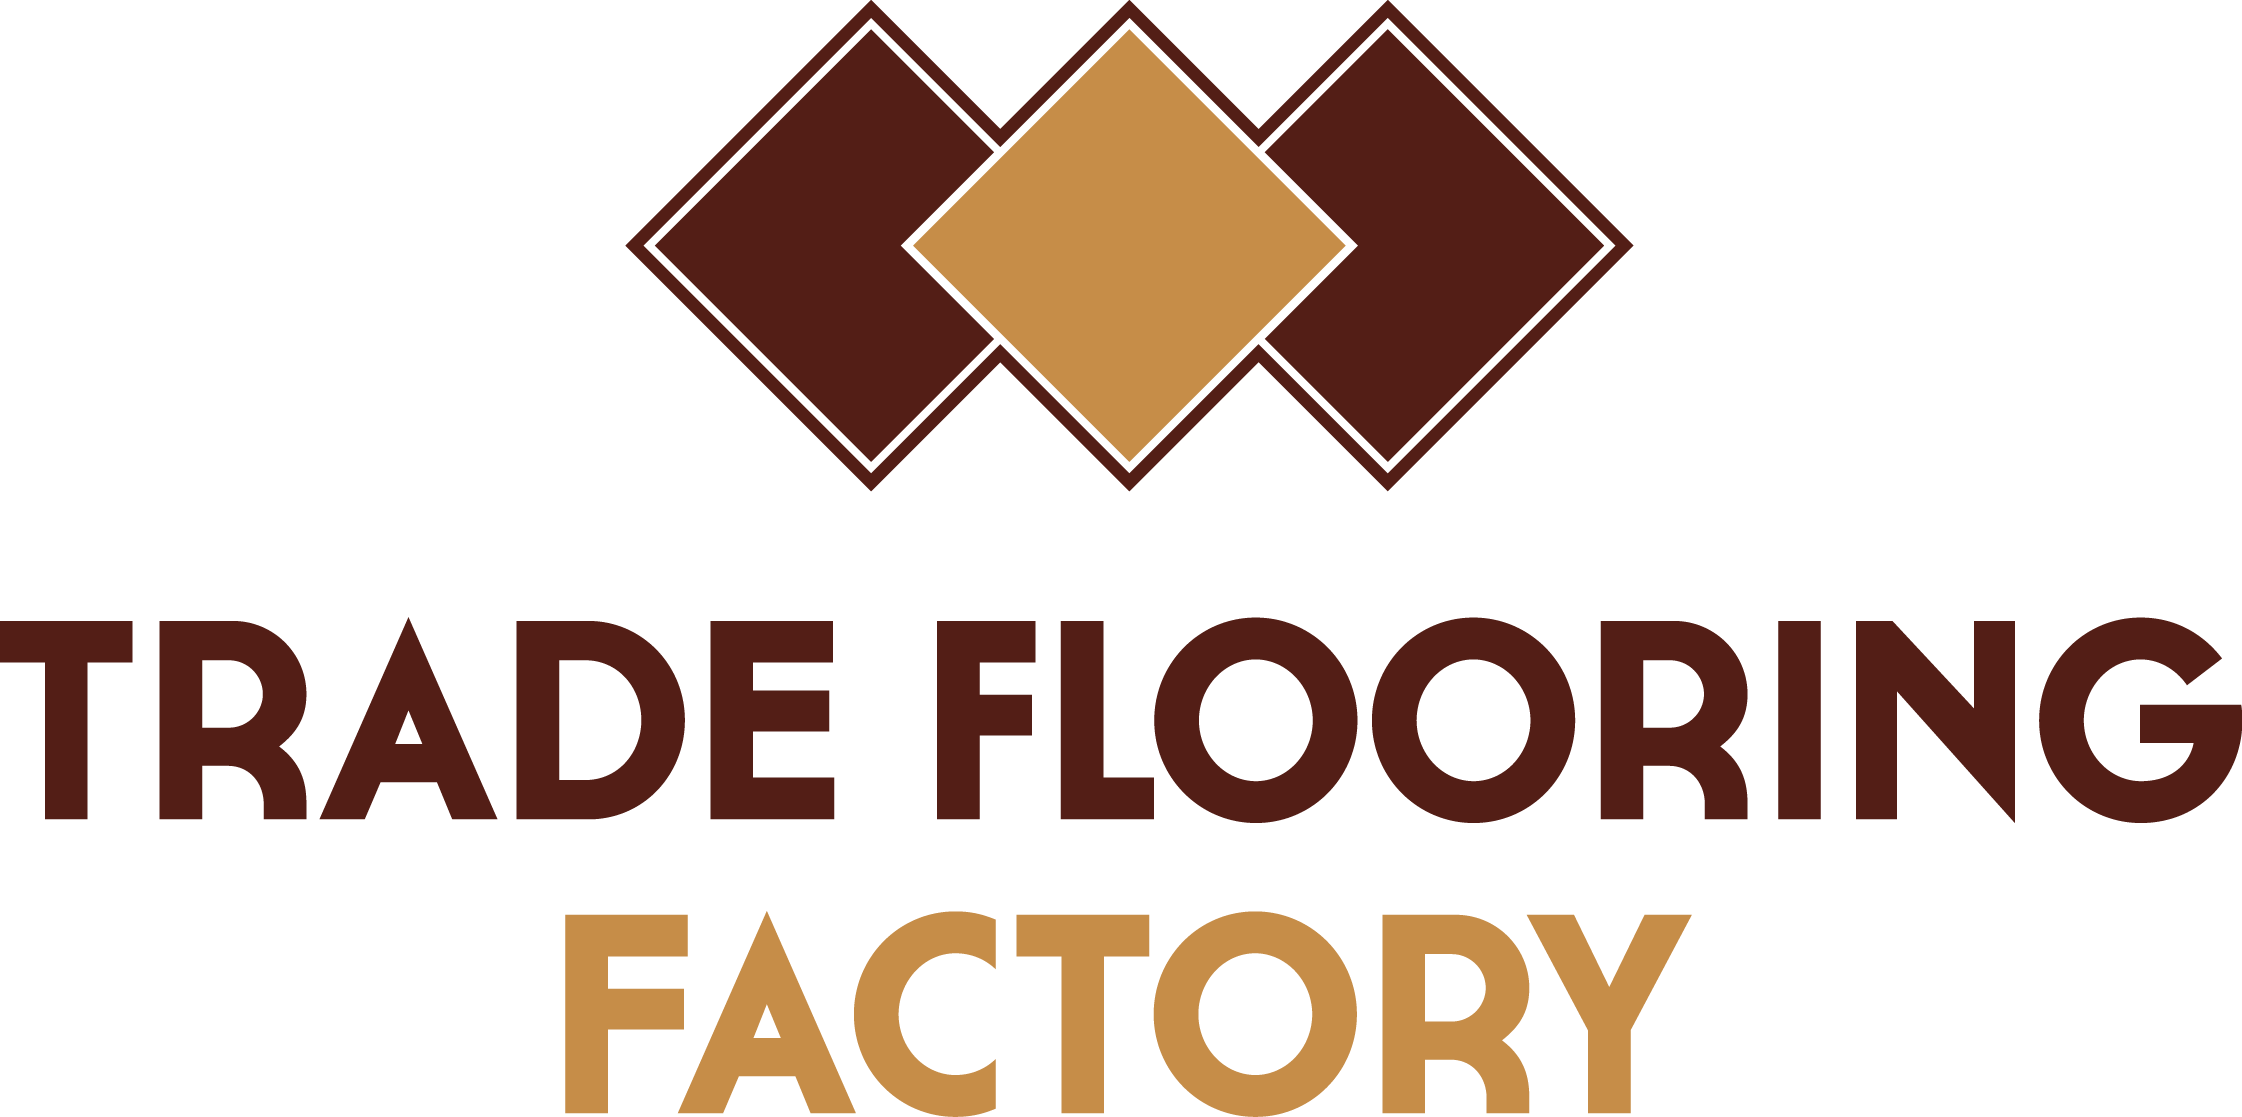 Factory clipart wood factory. Trade flooring supplier real